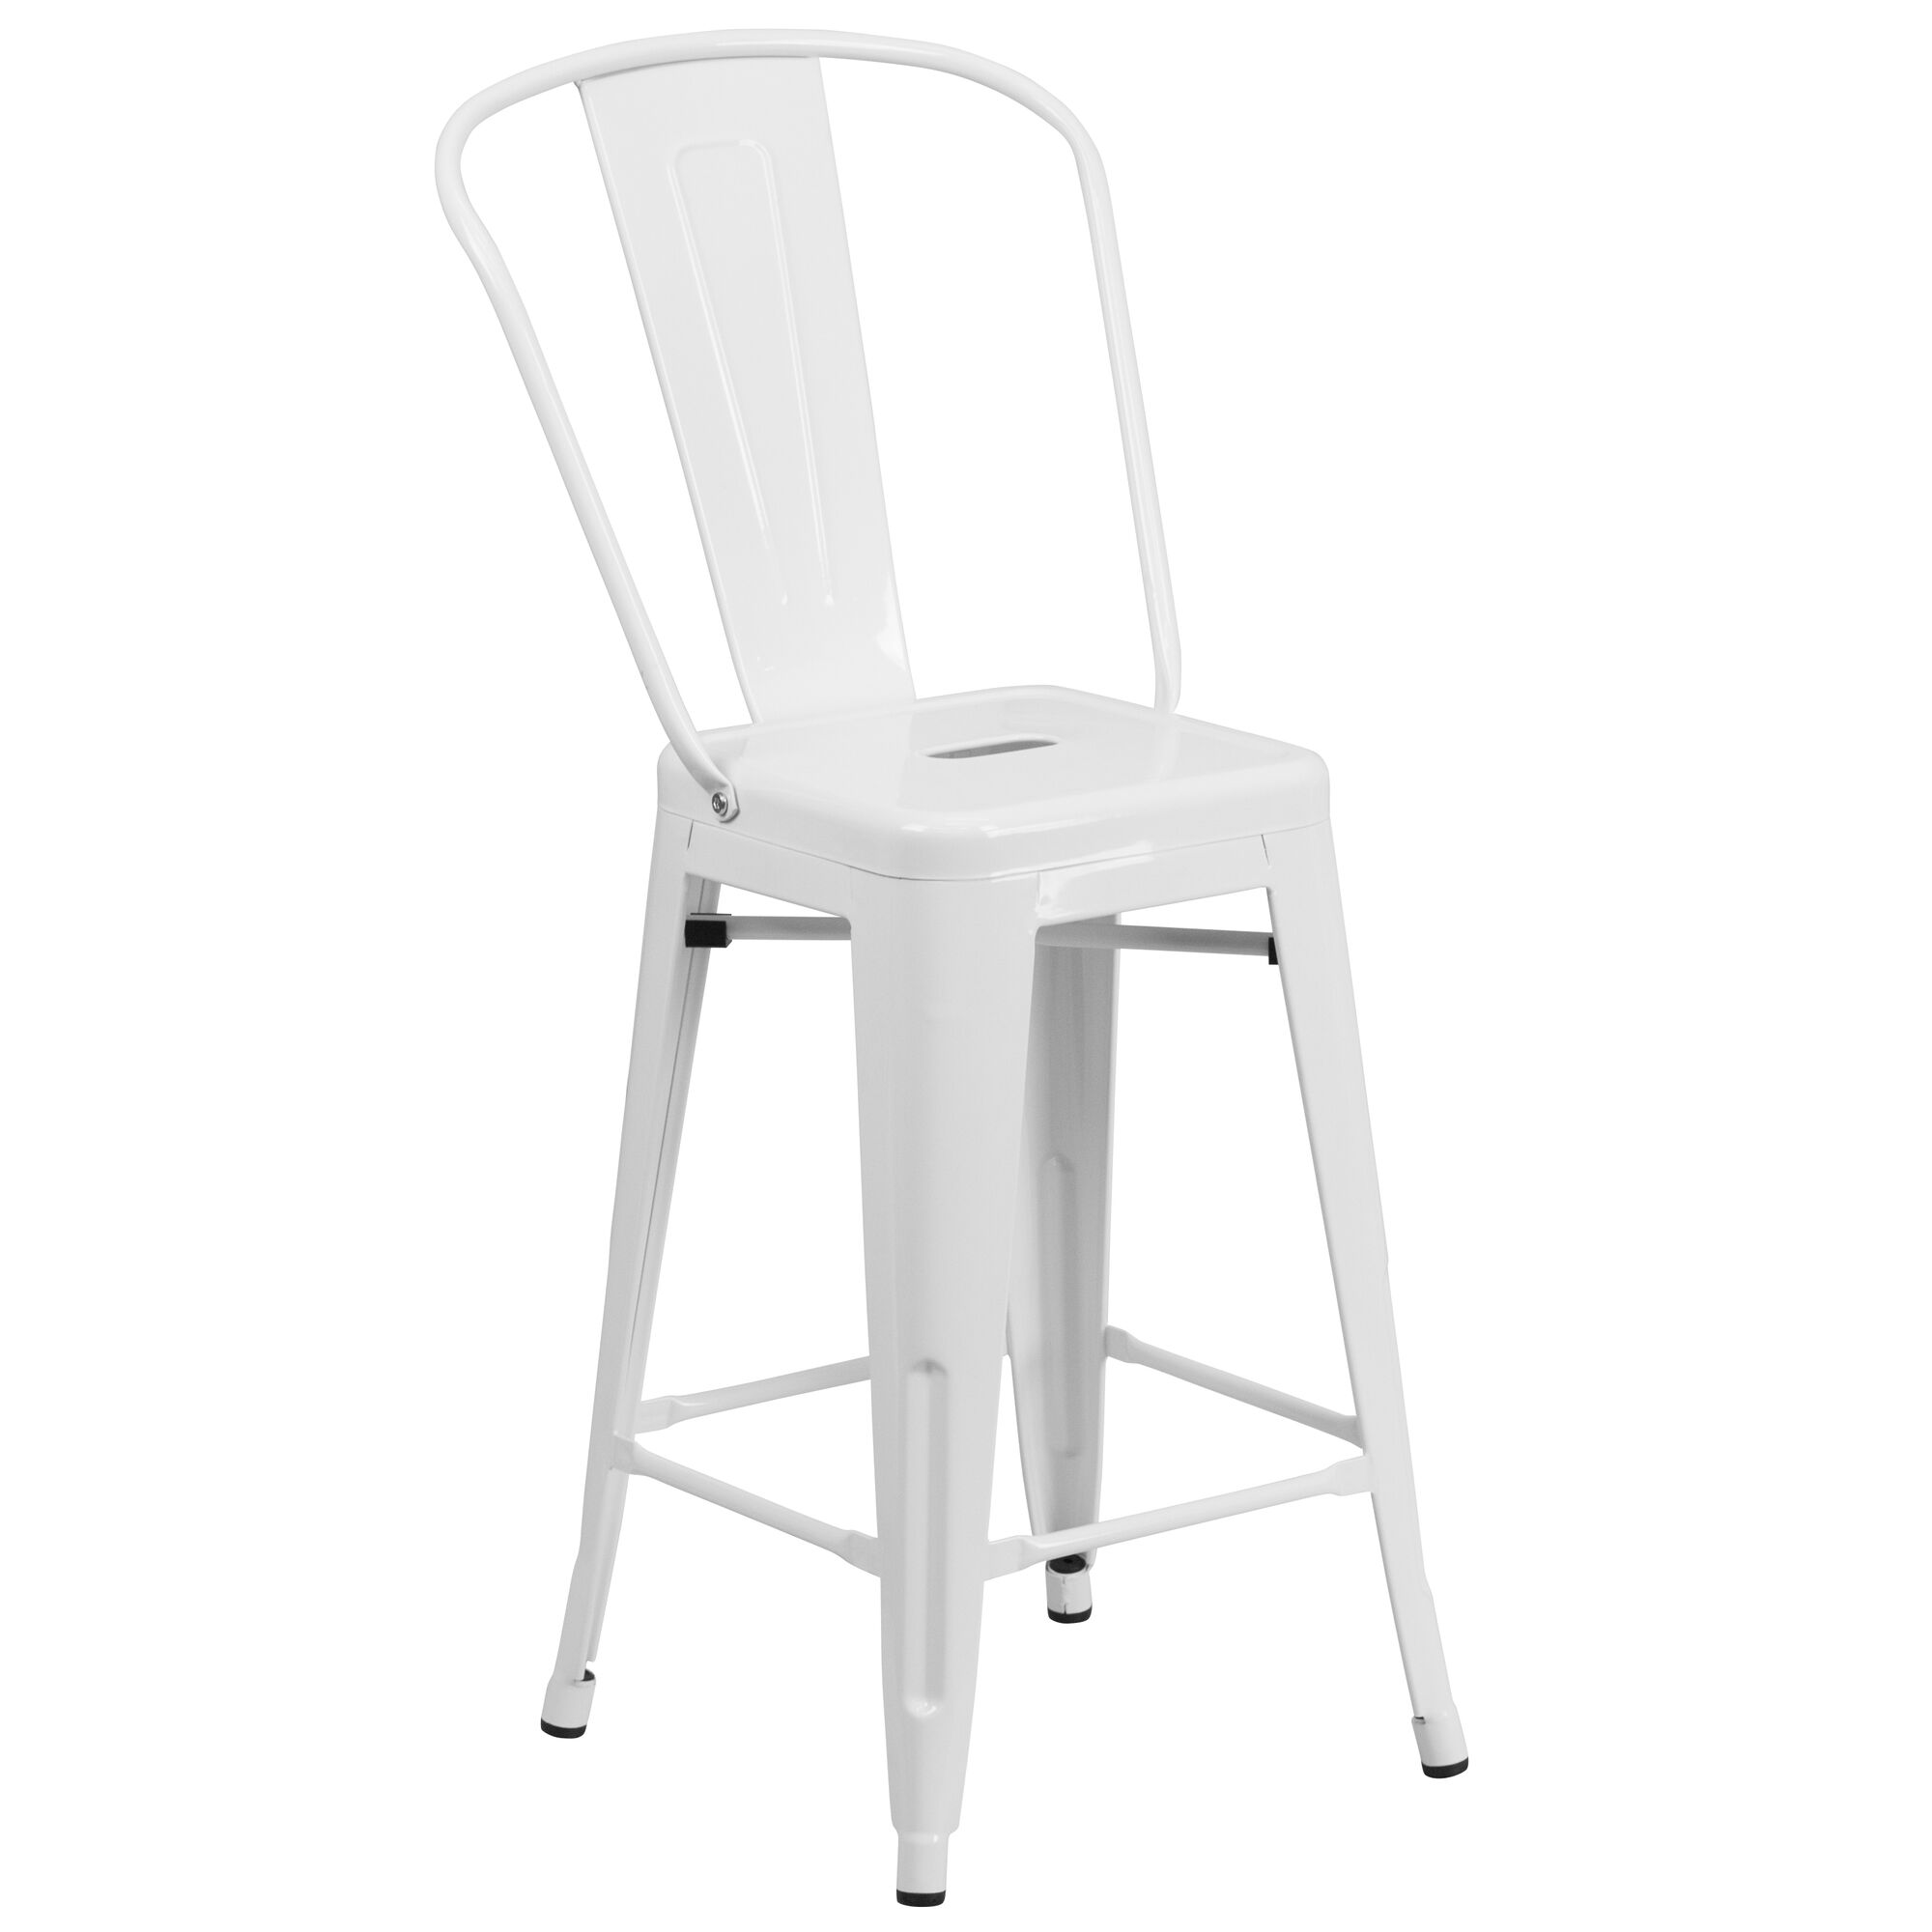 Surprising Commercial Grade 24 High White Metal Indoor Outdoor Counter Height Stool With Back Squirreltailoven Fun Painted Chair Ideas Images Squirreltailovenorg